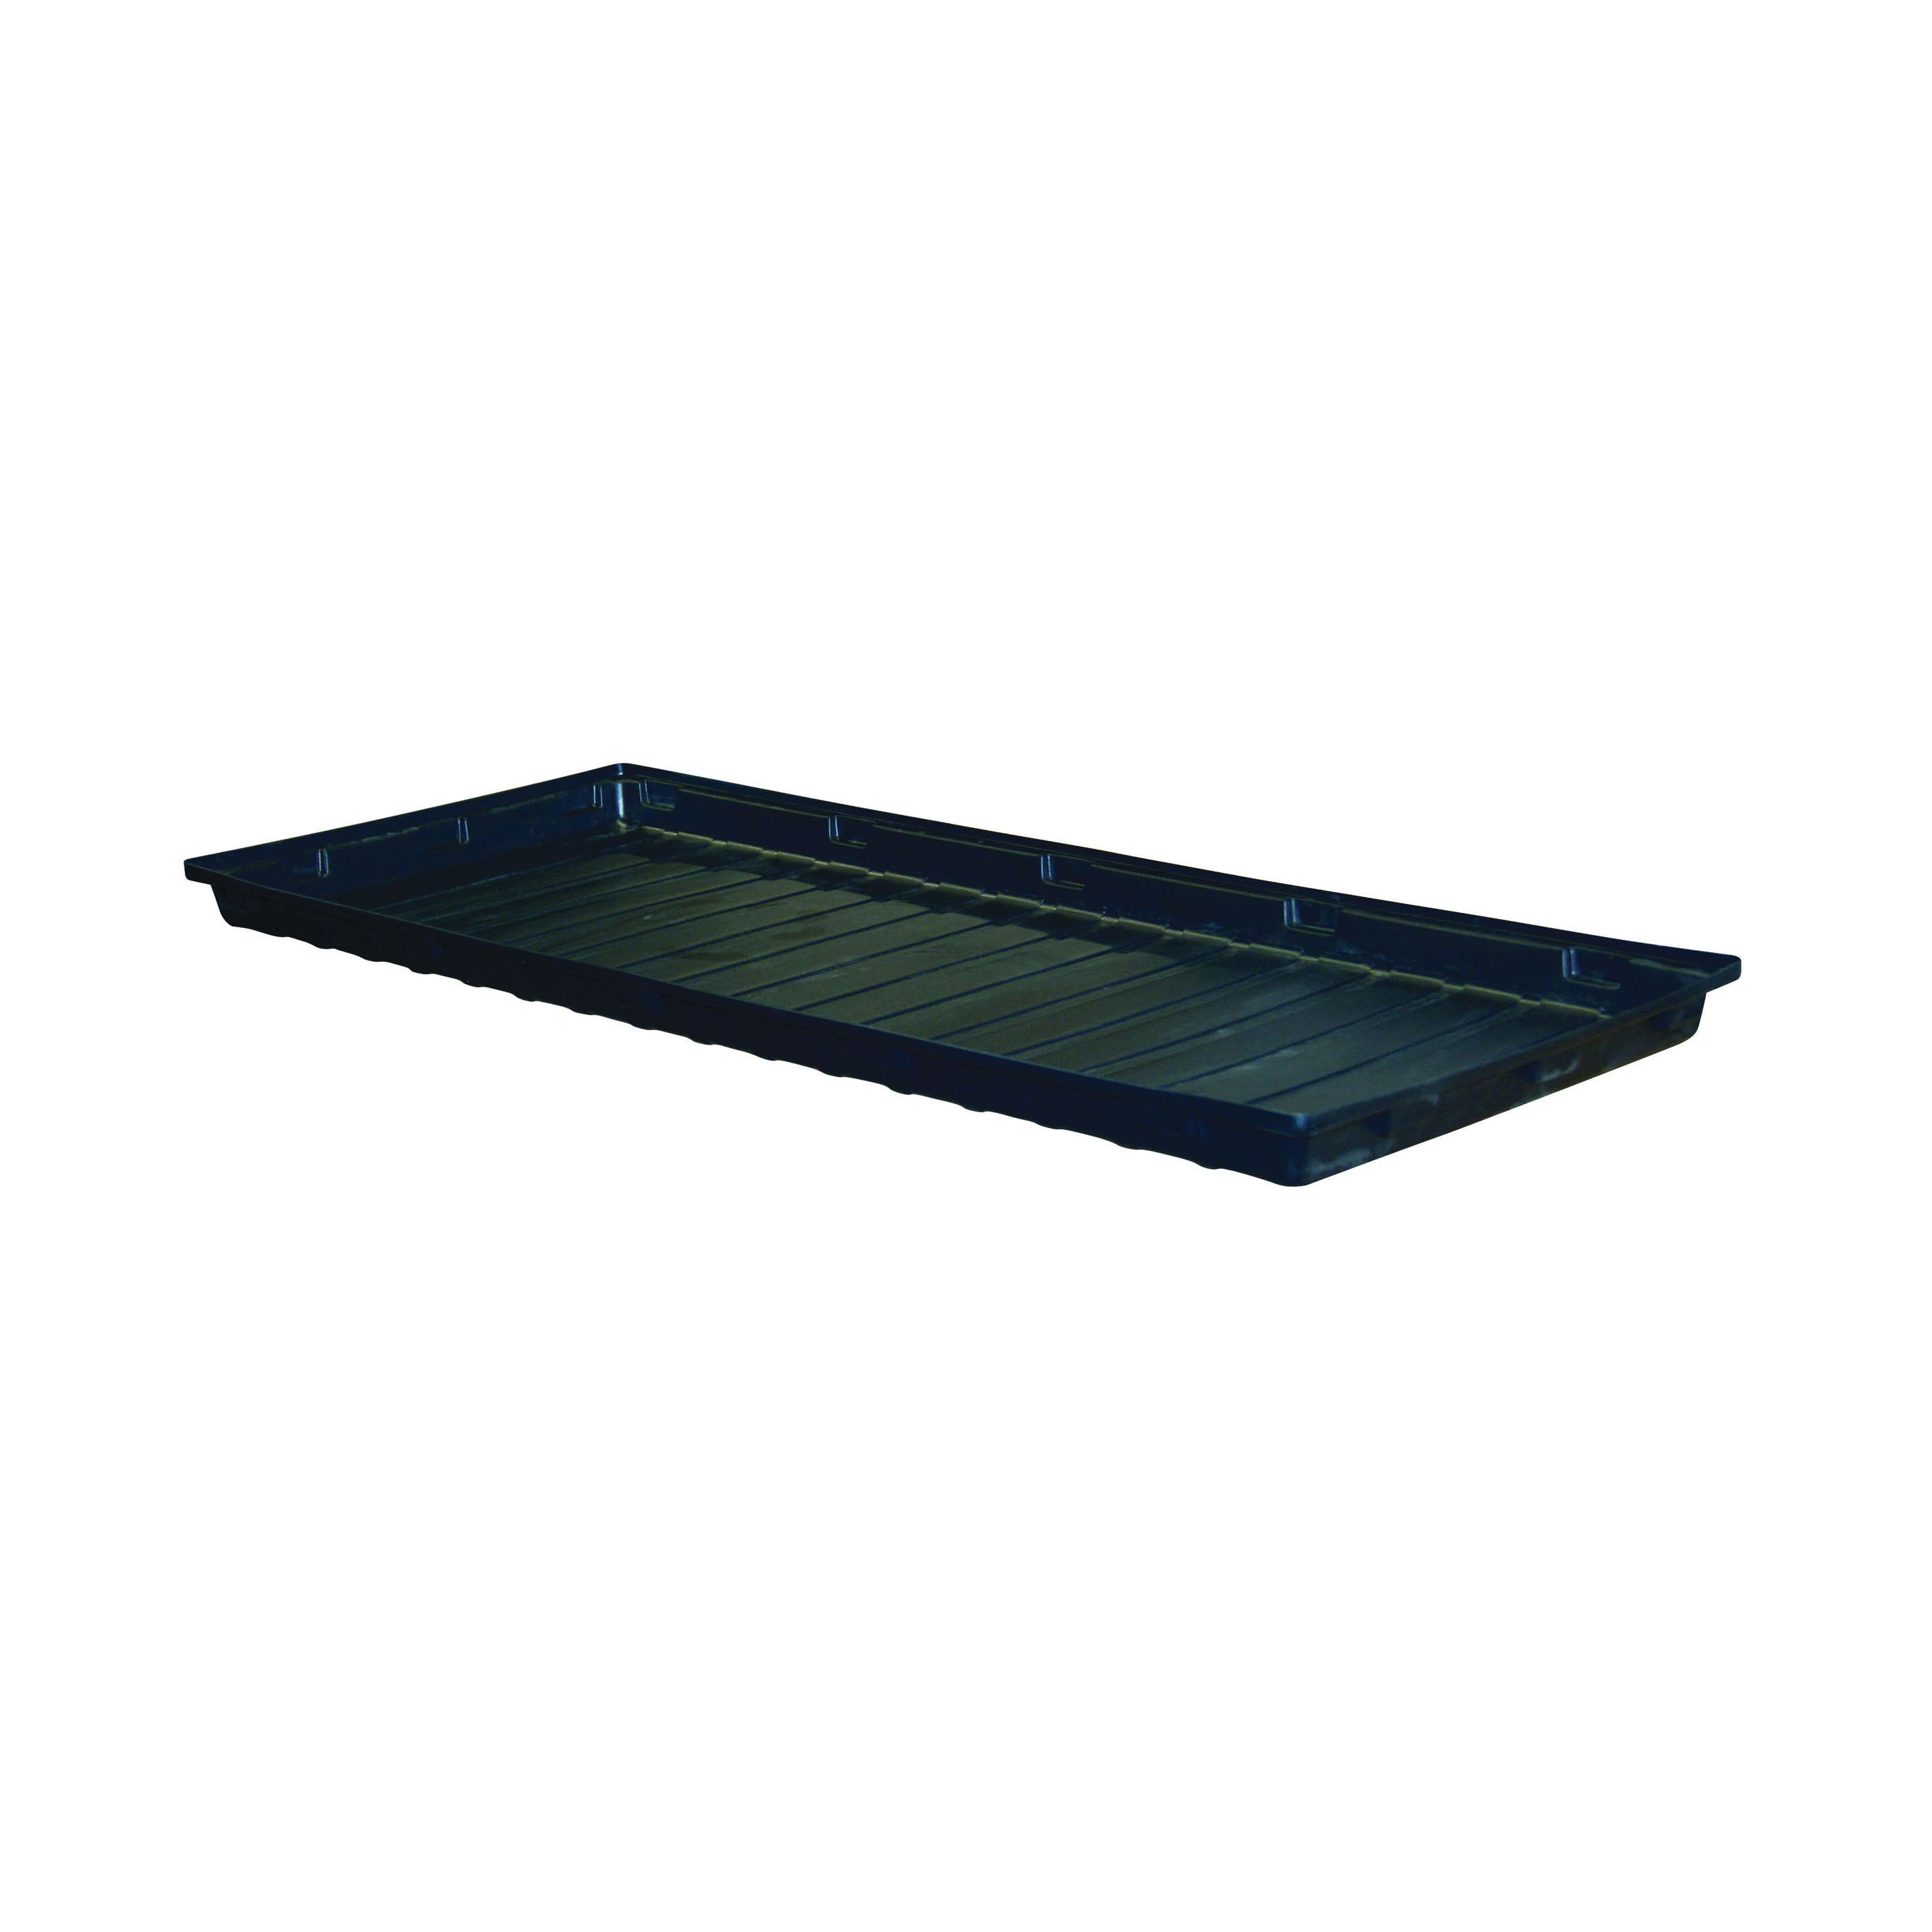 Justrite® 22633 Tray, For Use With 22631 45 gal 30 min/90 min Safety Cabinet, Black